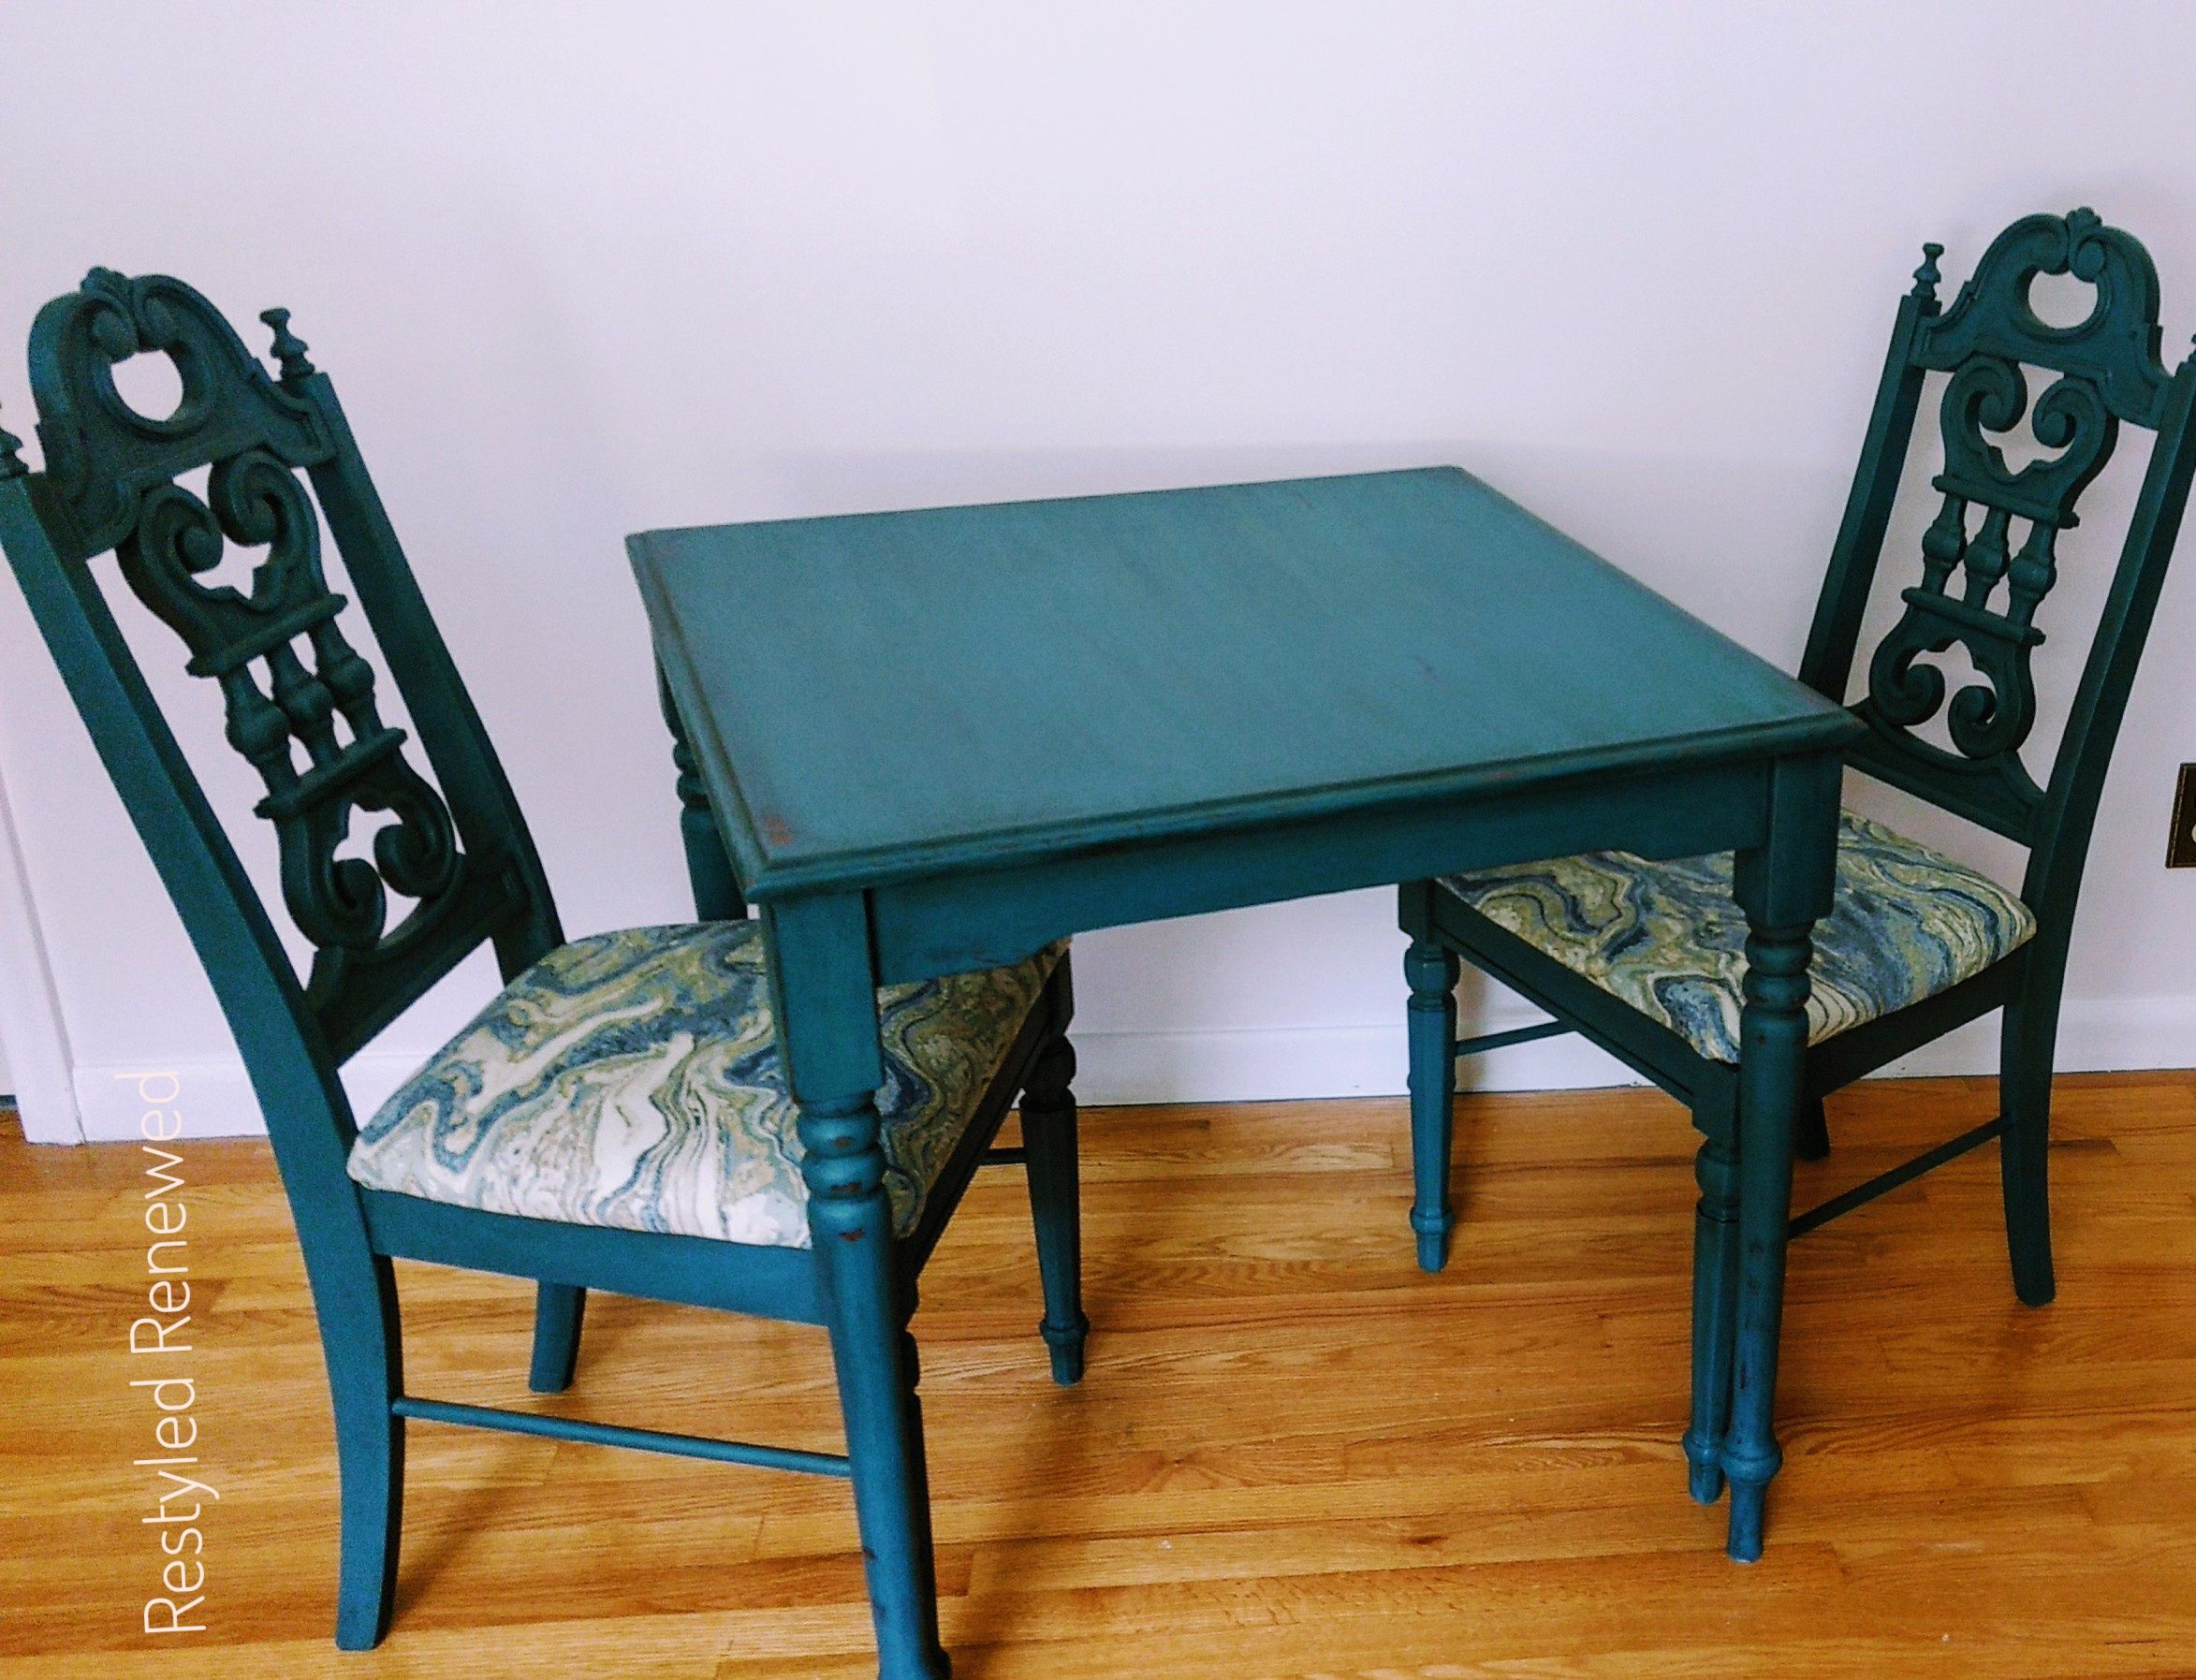 Single Post | Turquoise table, Painted dining chairs, Teak ...